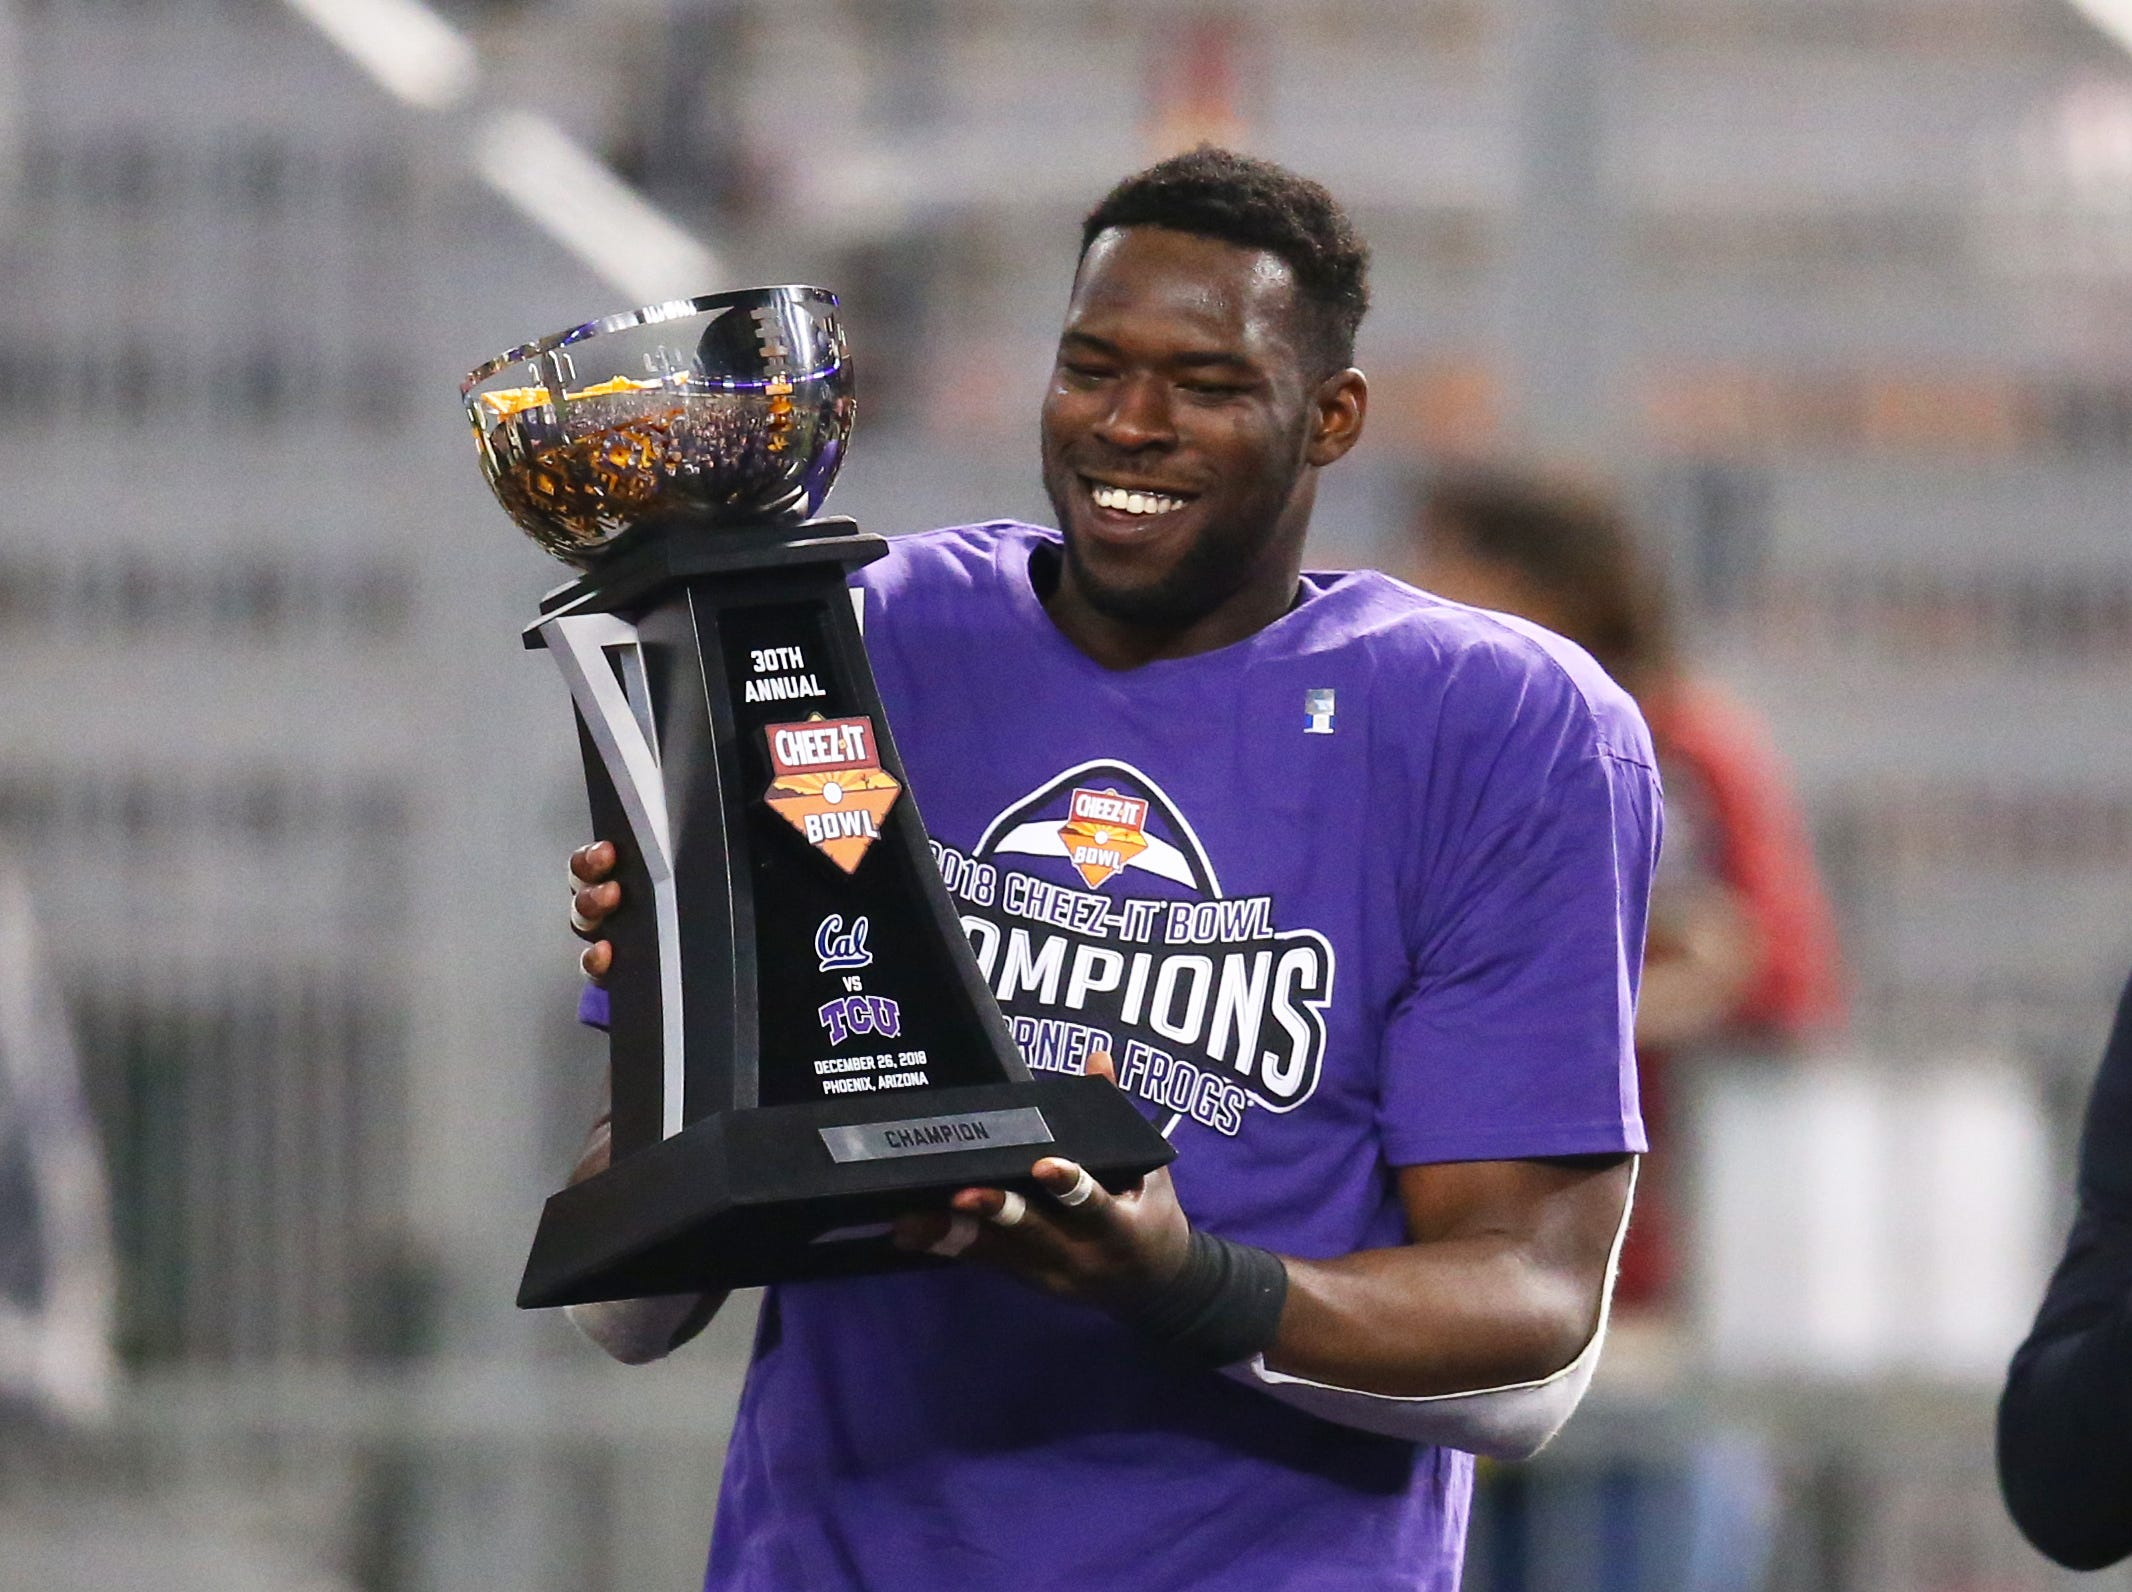 Dec 26, 2018; Phoenix, AZ, USA; Texas Christian Horned Frogs defensive end Ben Banogu celebrates with the trophy after defeating the California Golden Bears in overtime of the 2018 Cheez-It Bowl at Chase Field. Mandatory Credit: Mark J. Rebilas-USA TODAY Sports